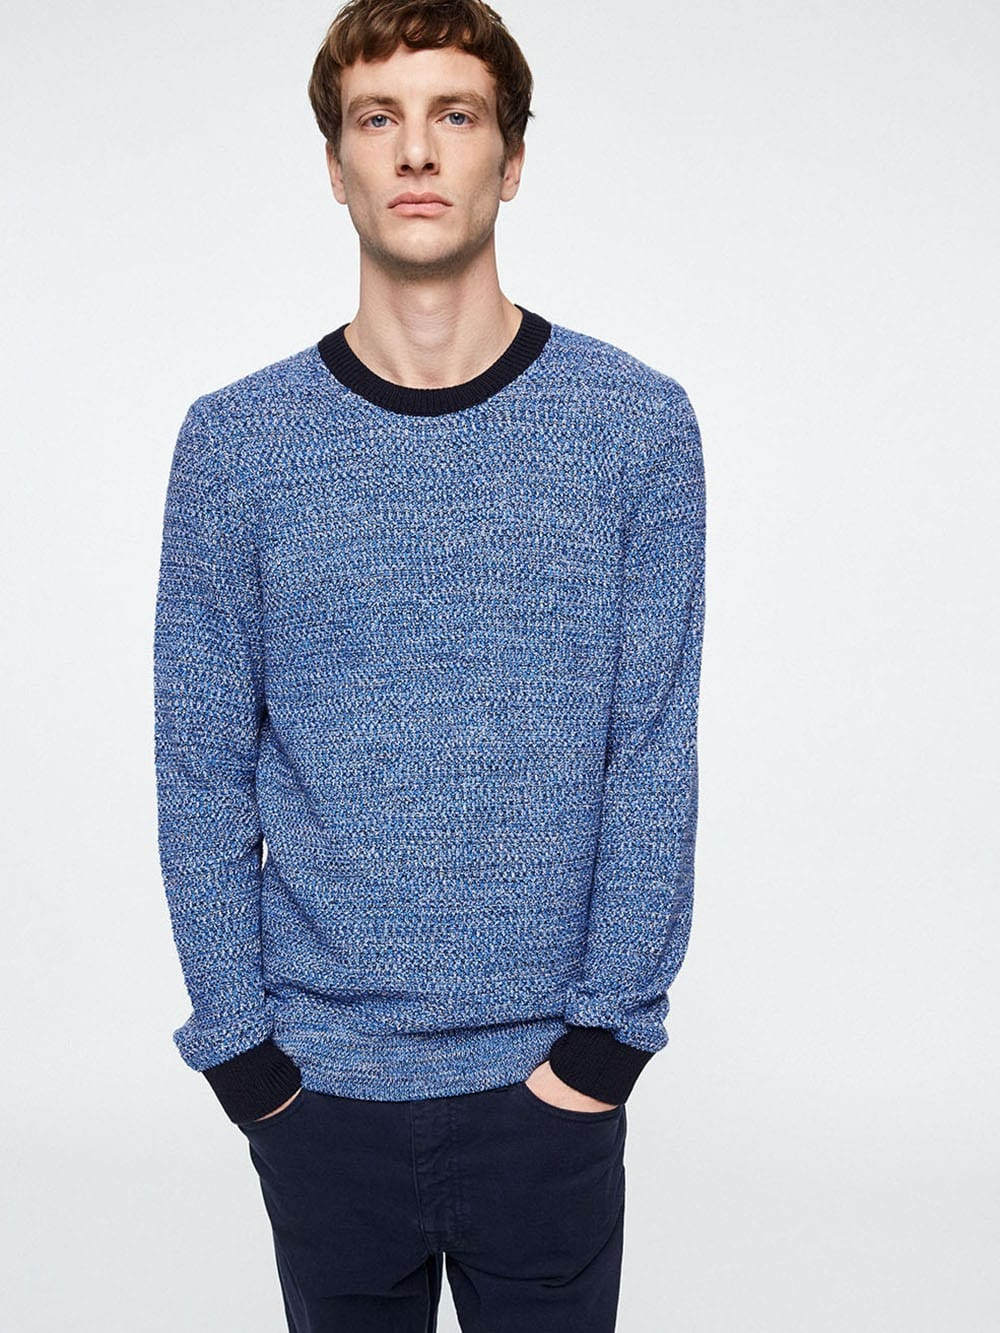 Organic Cotton Knit Jersey-Mikaael